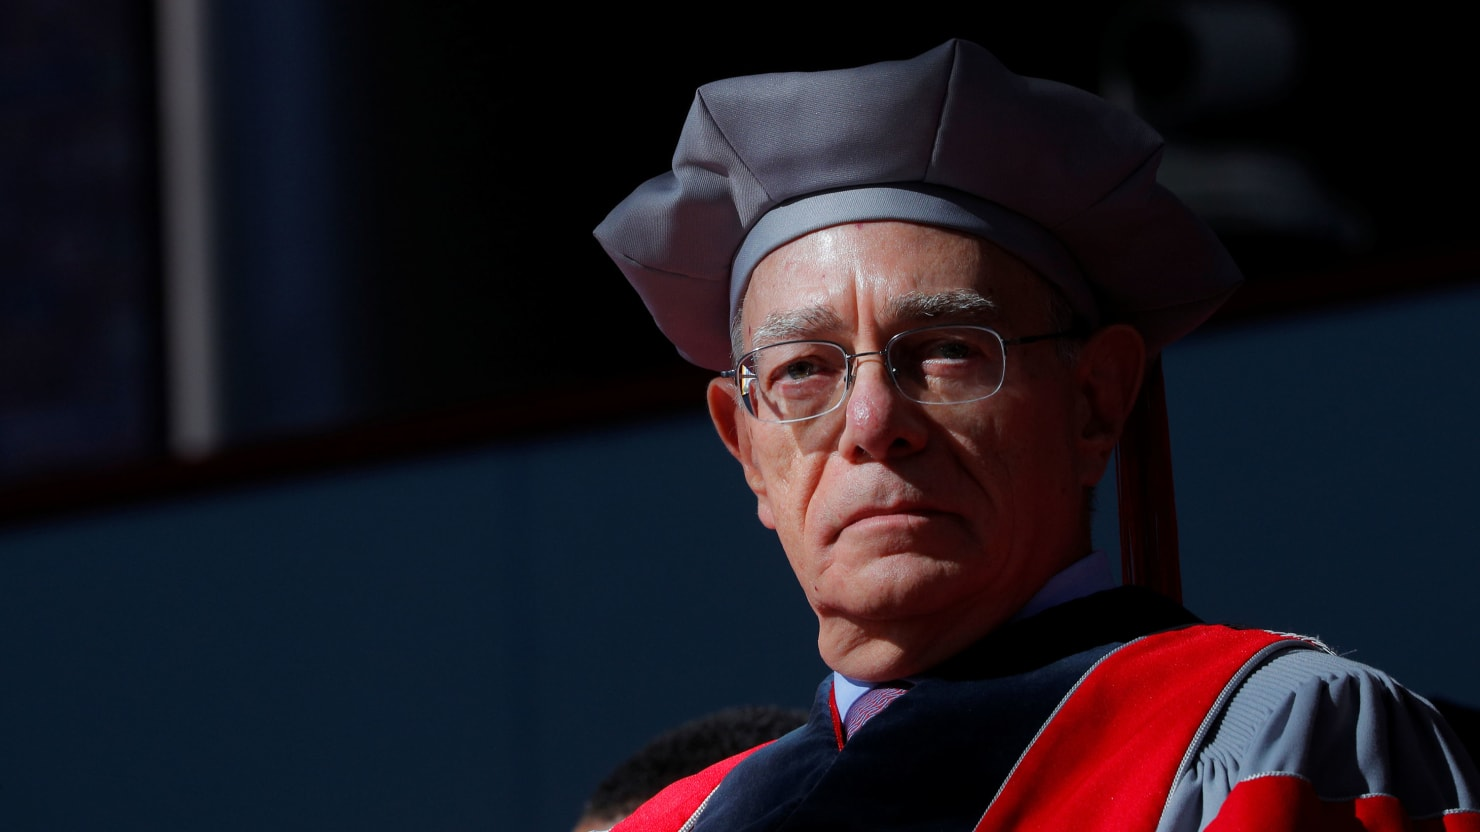 MIT Students and Alumni Call for President L. Rafael Reif to Step Down Over Epstein